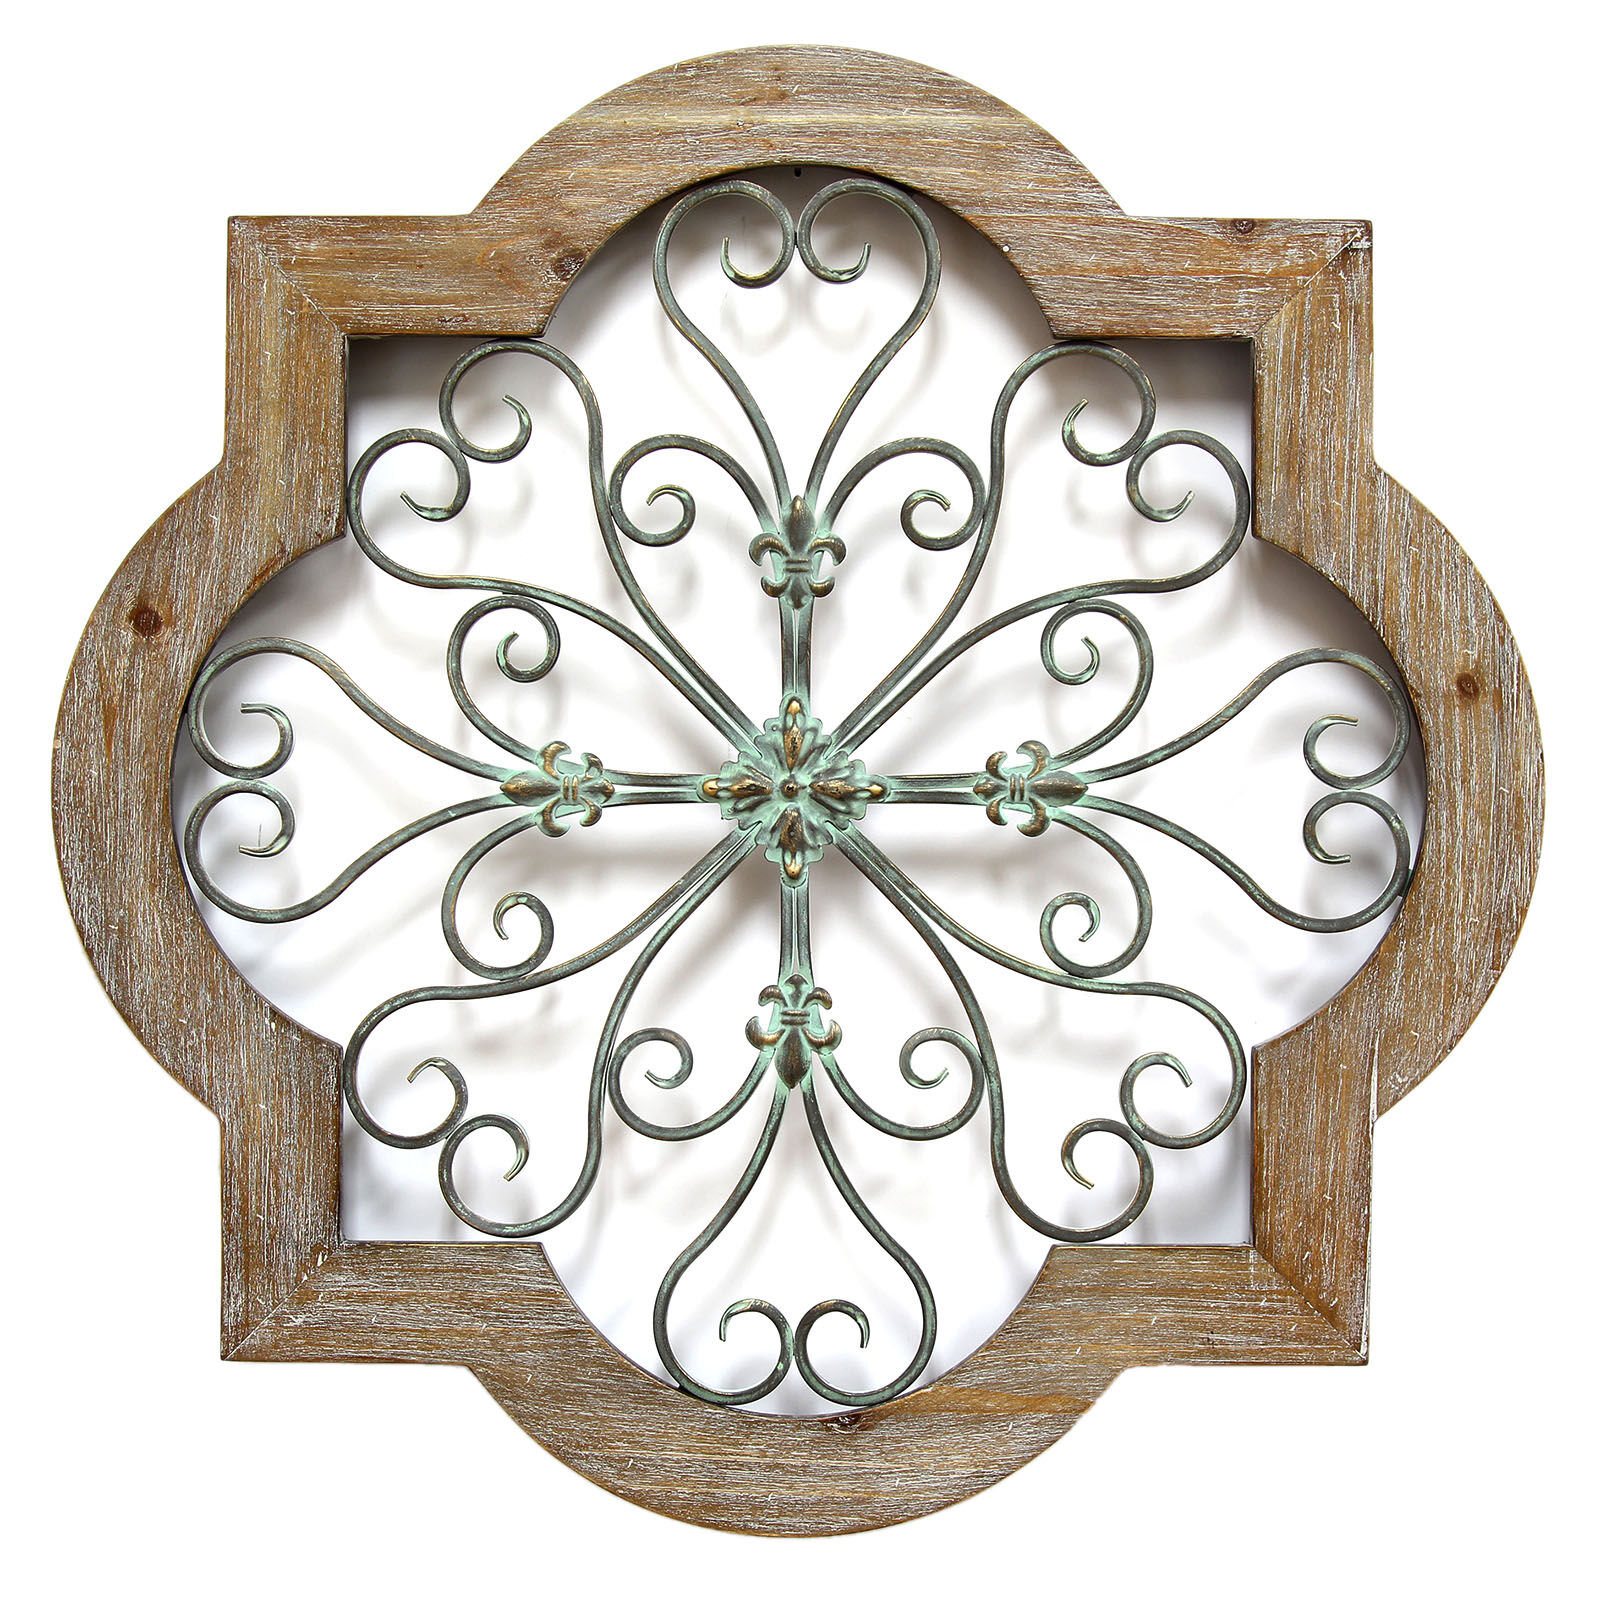 Wood And Metal Quatrefoil Wall Decor 24 In At Home